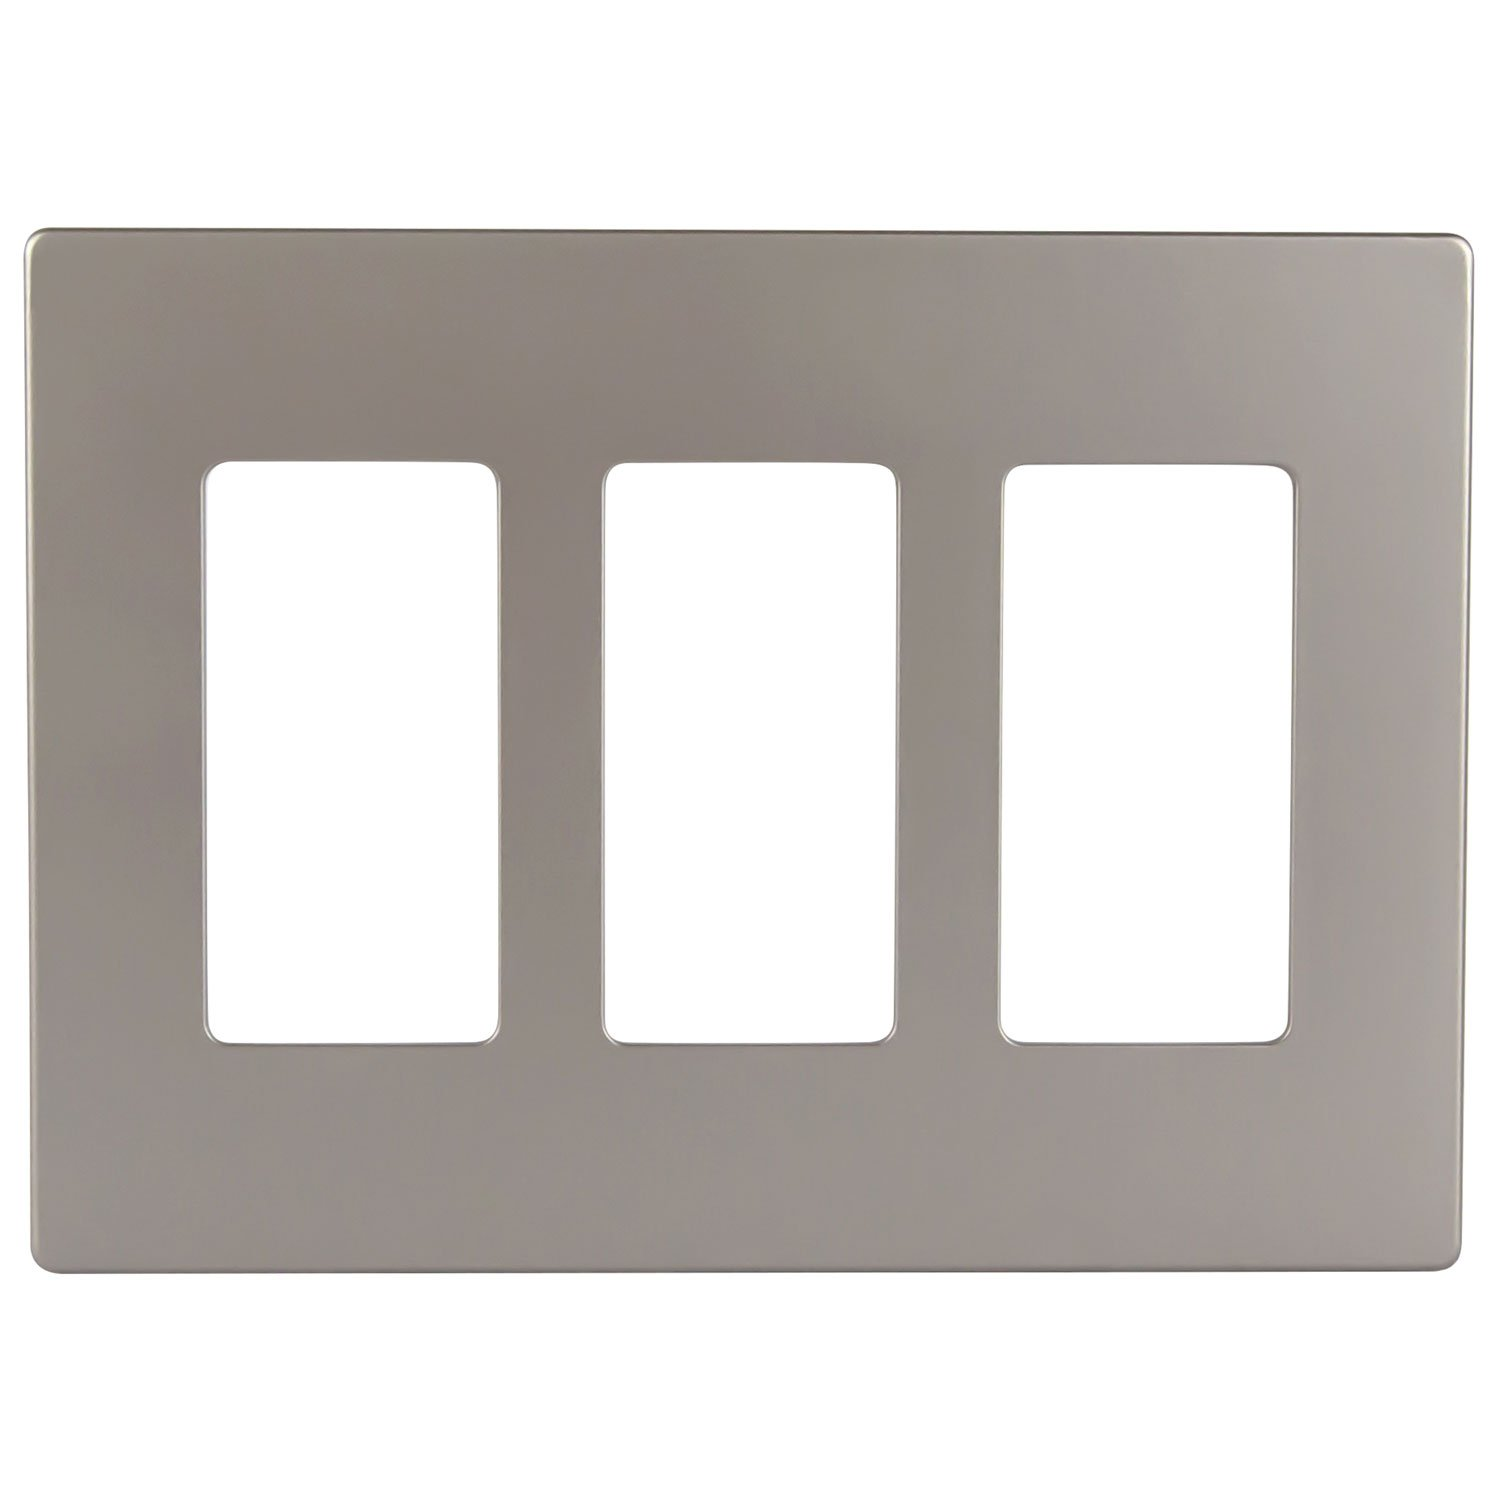 Enerlites SI8833N-NK Elite Series Decorative Screwless Decorator Wall Plate Child Safe Outlet Cover, 3-Gang Standard Size, Polycarbonate Thermoplastic, Nickel Color